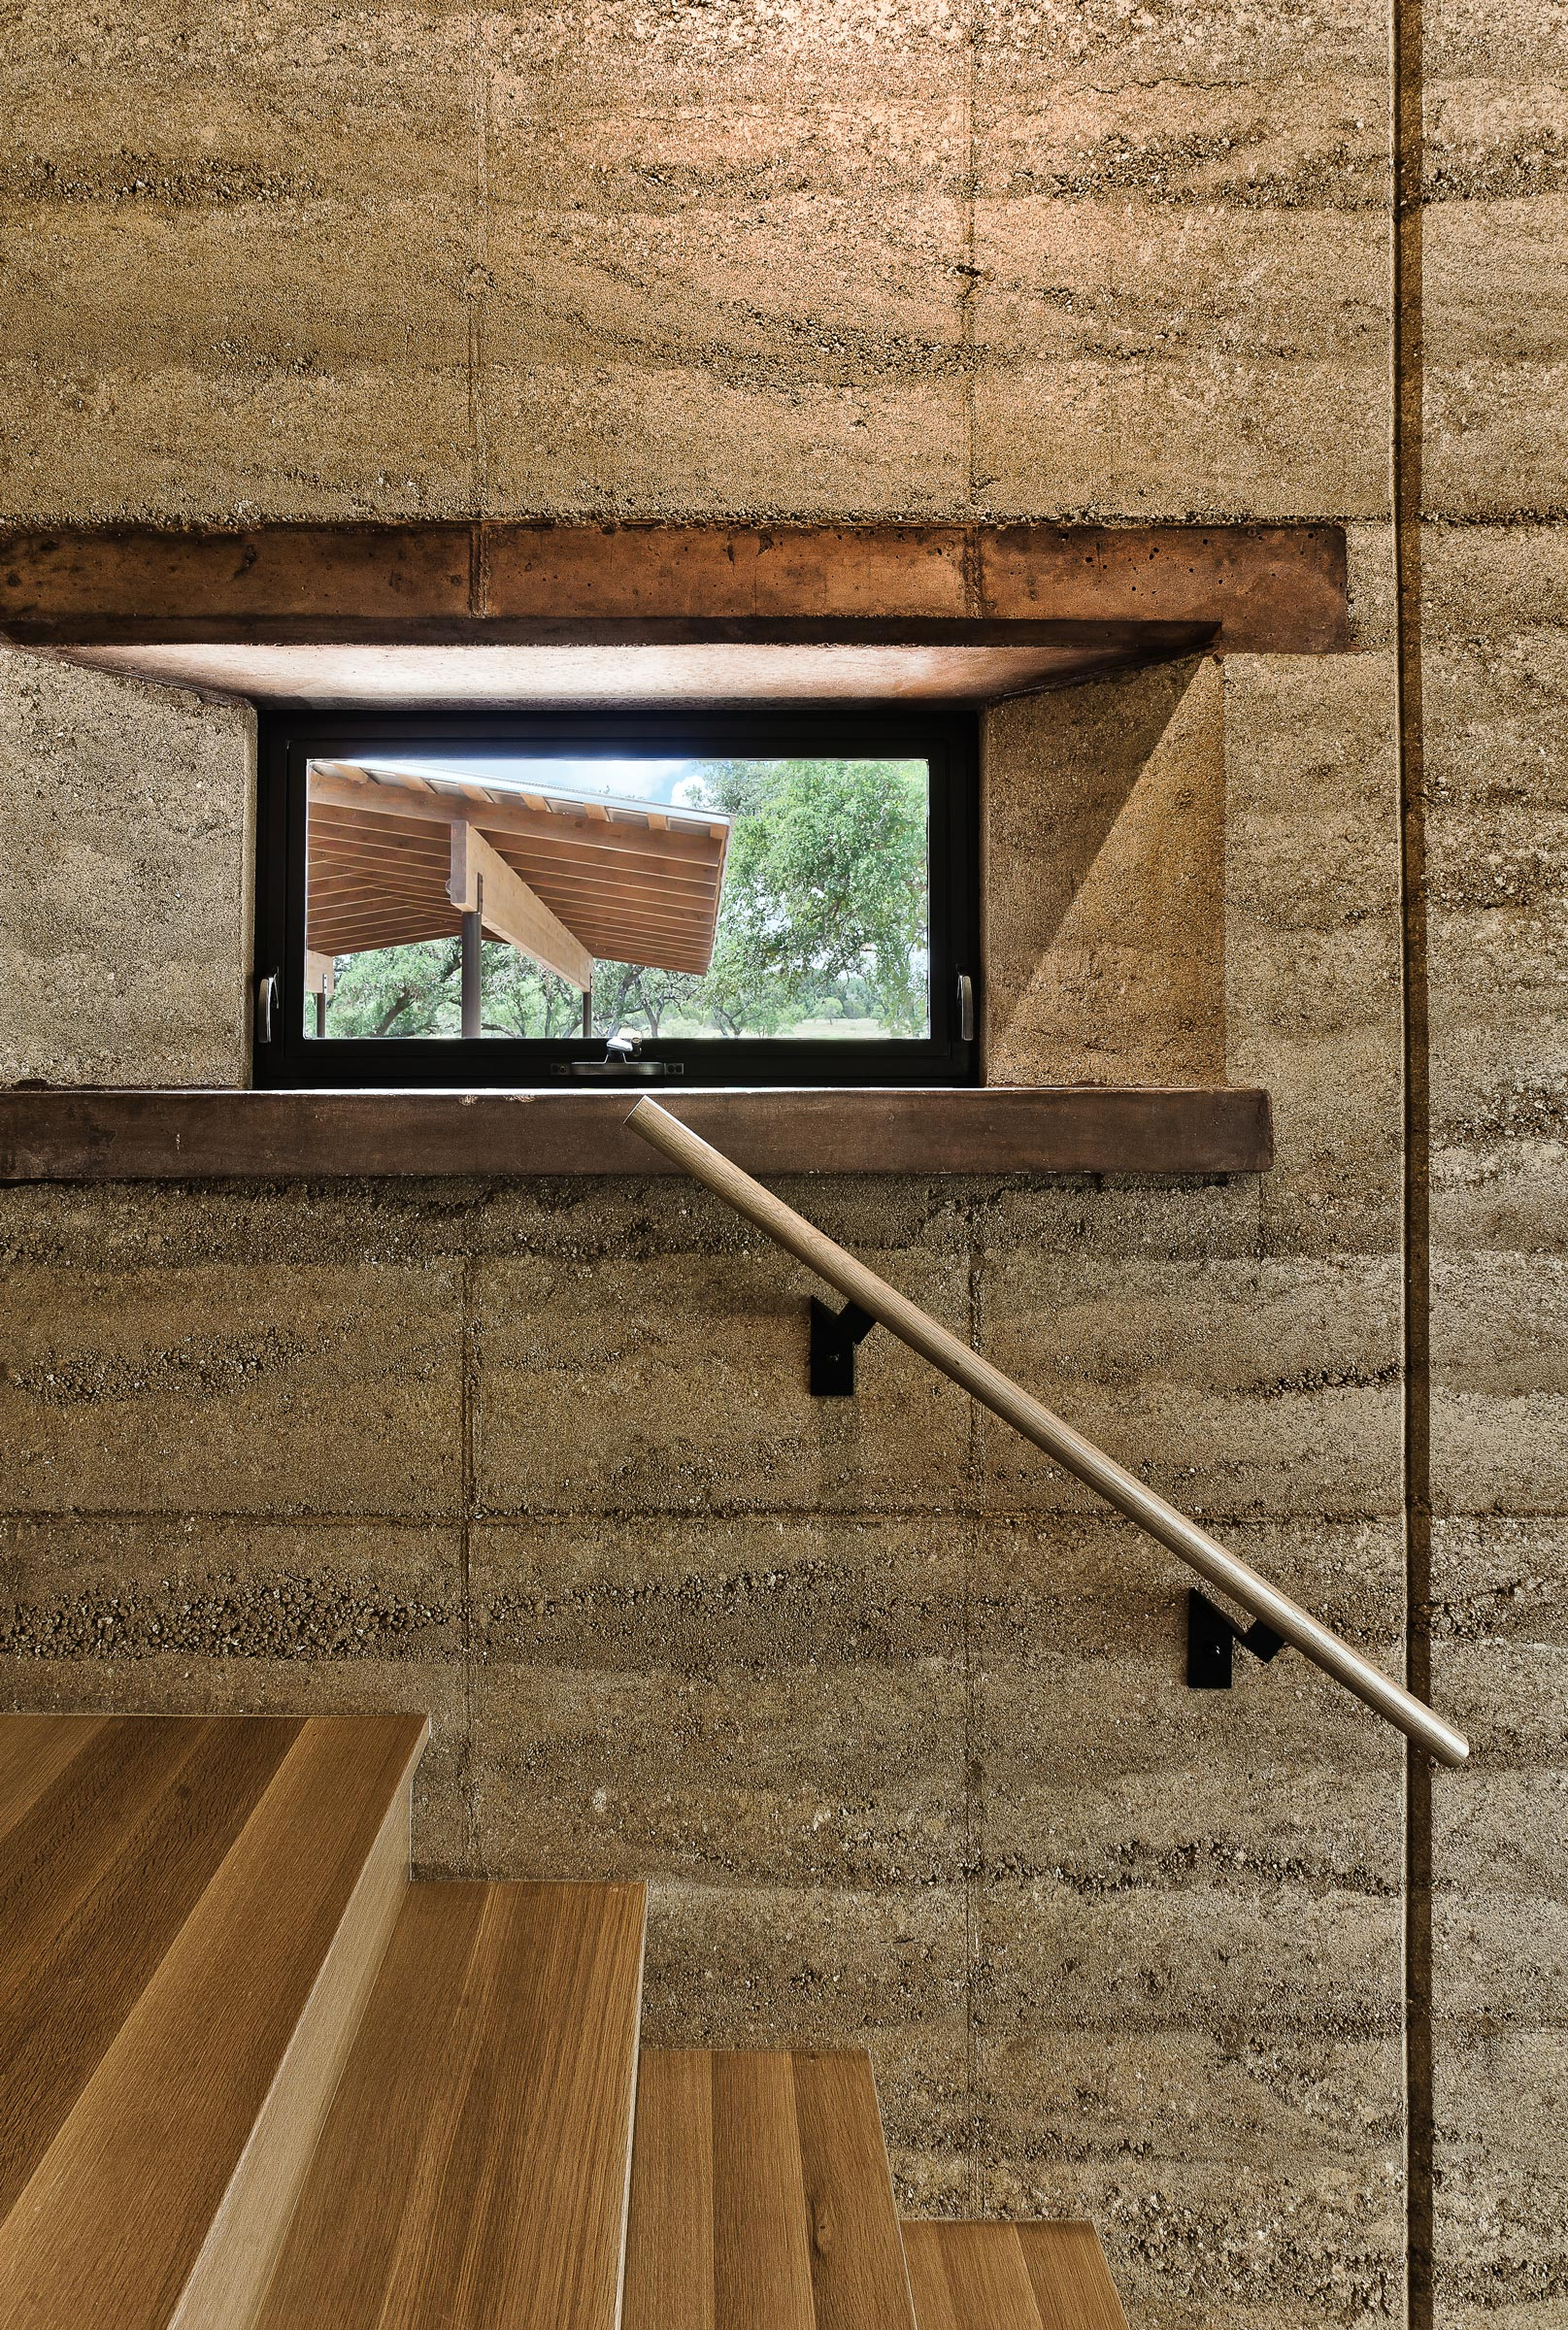 furman_keil_rammed_earth_ranch_2.jpg